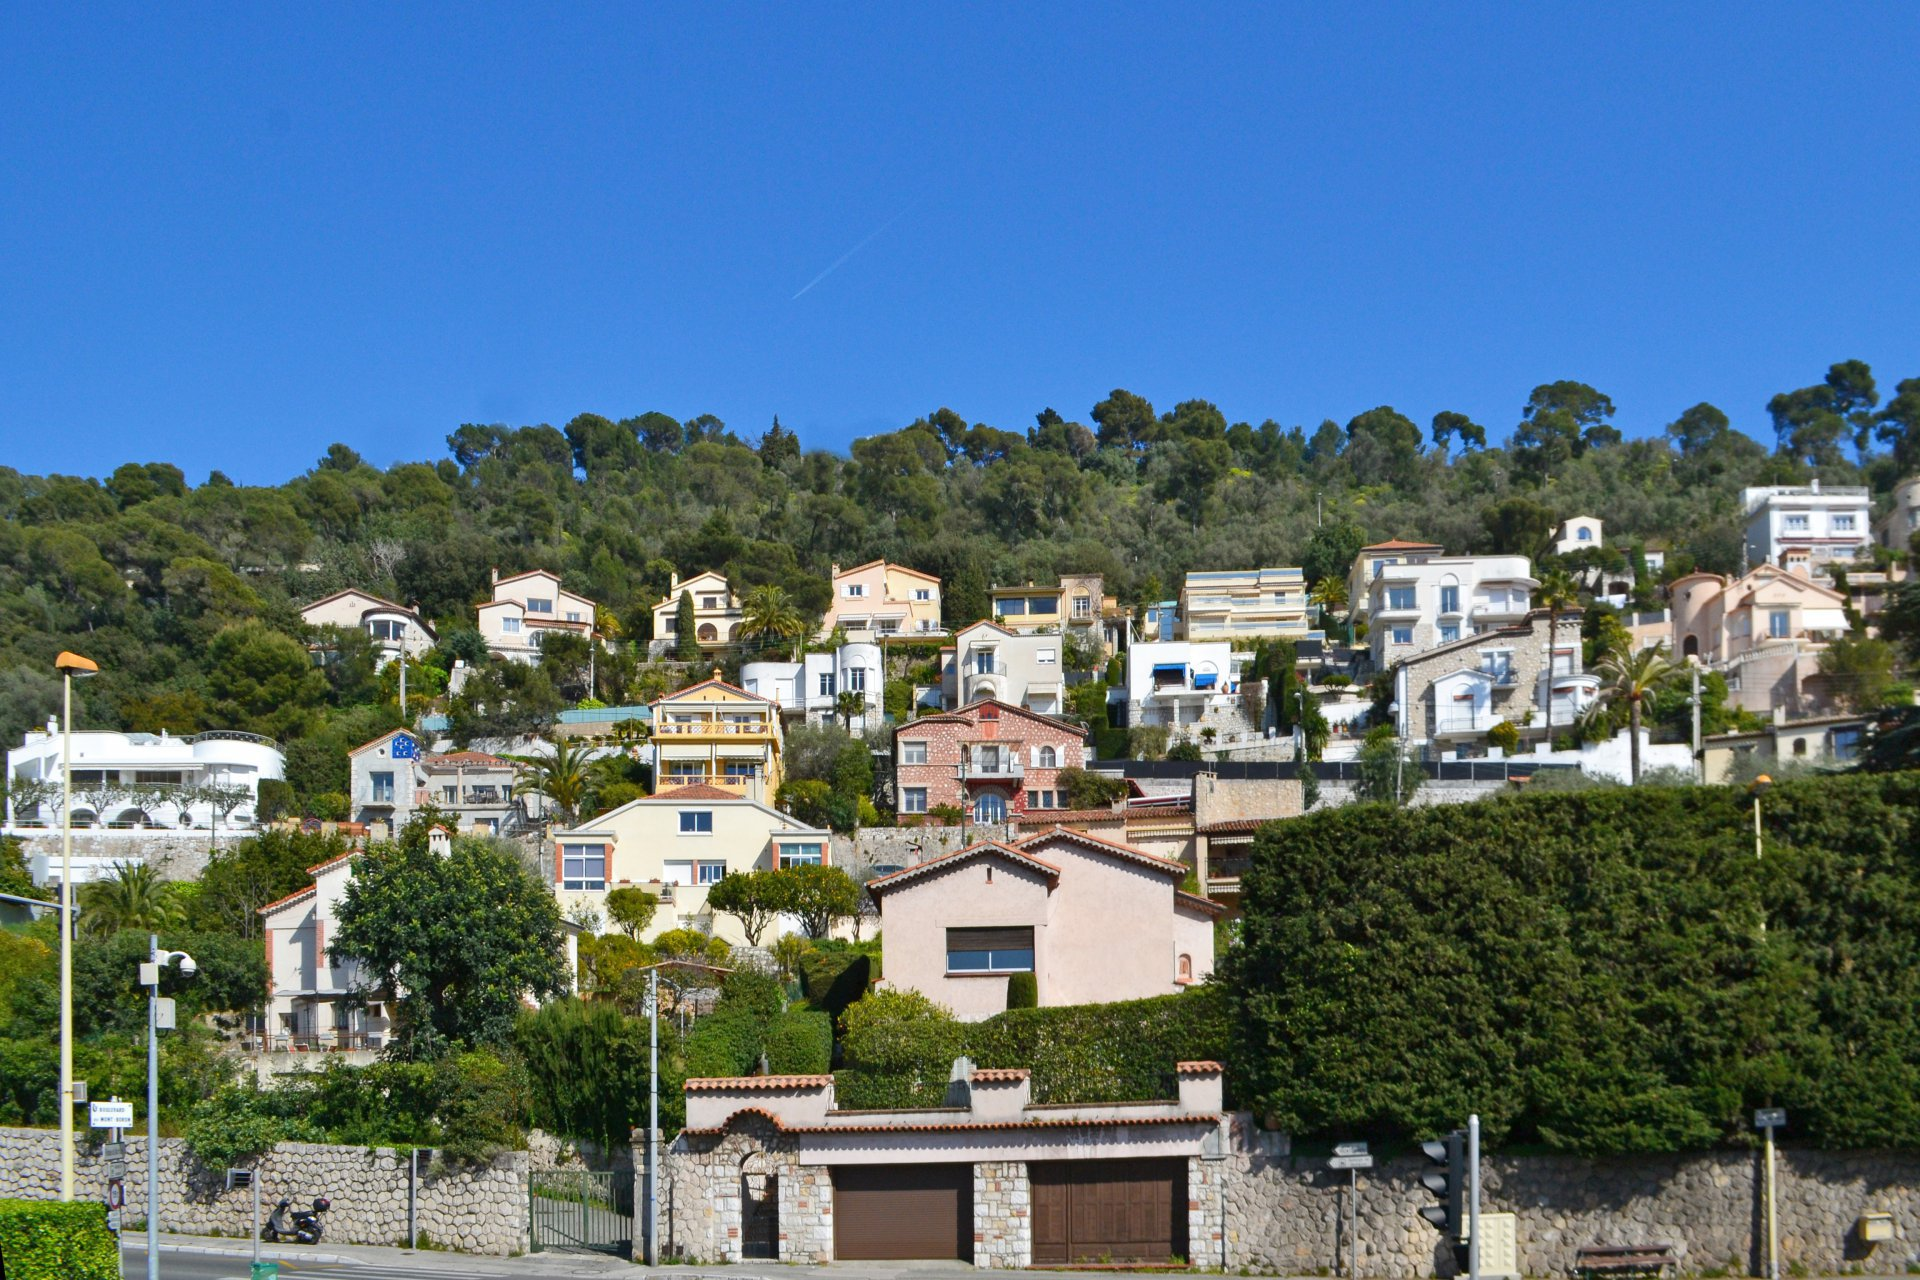 Nice Mont Boron - 2 bed apart 85m2 with beautiful views on cities, mountains and sea